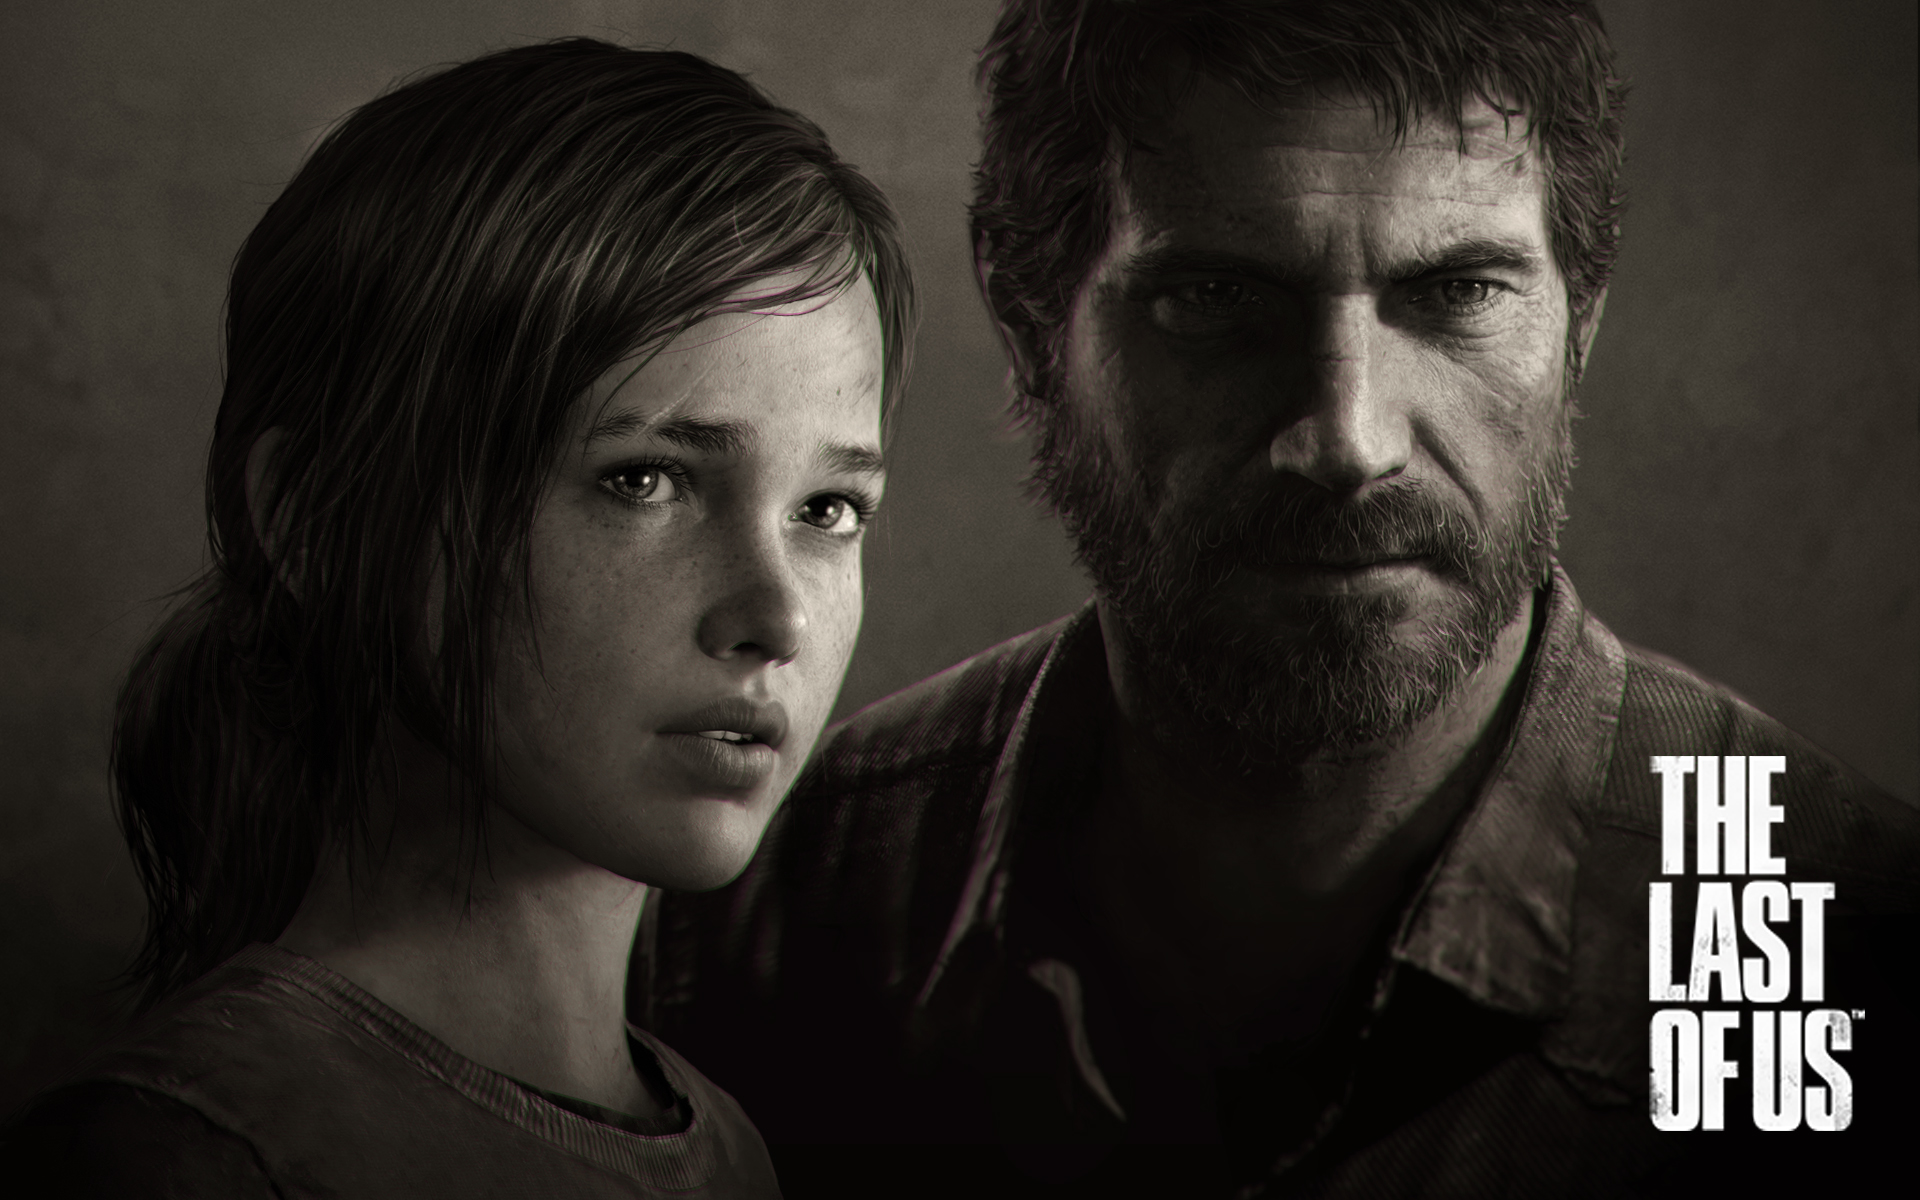 The last of us vende como pan caliente!! [Super ventas!]